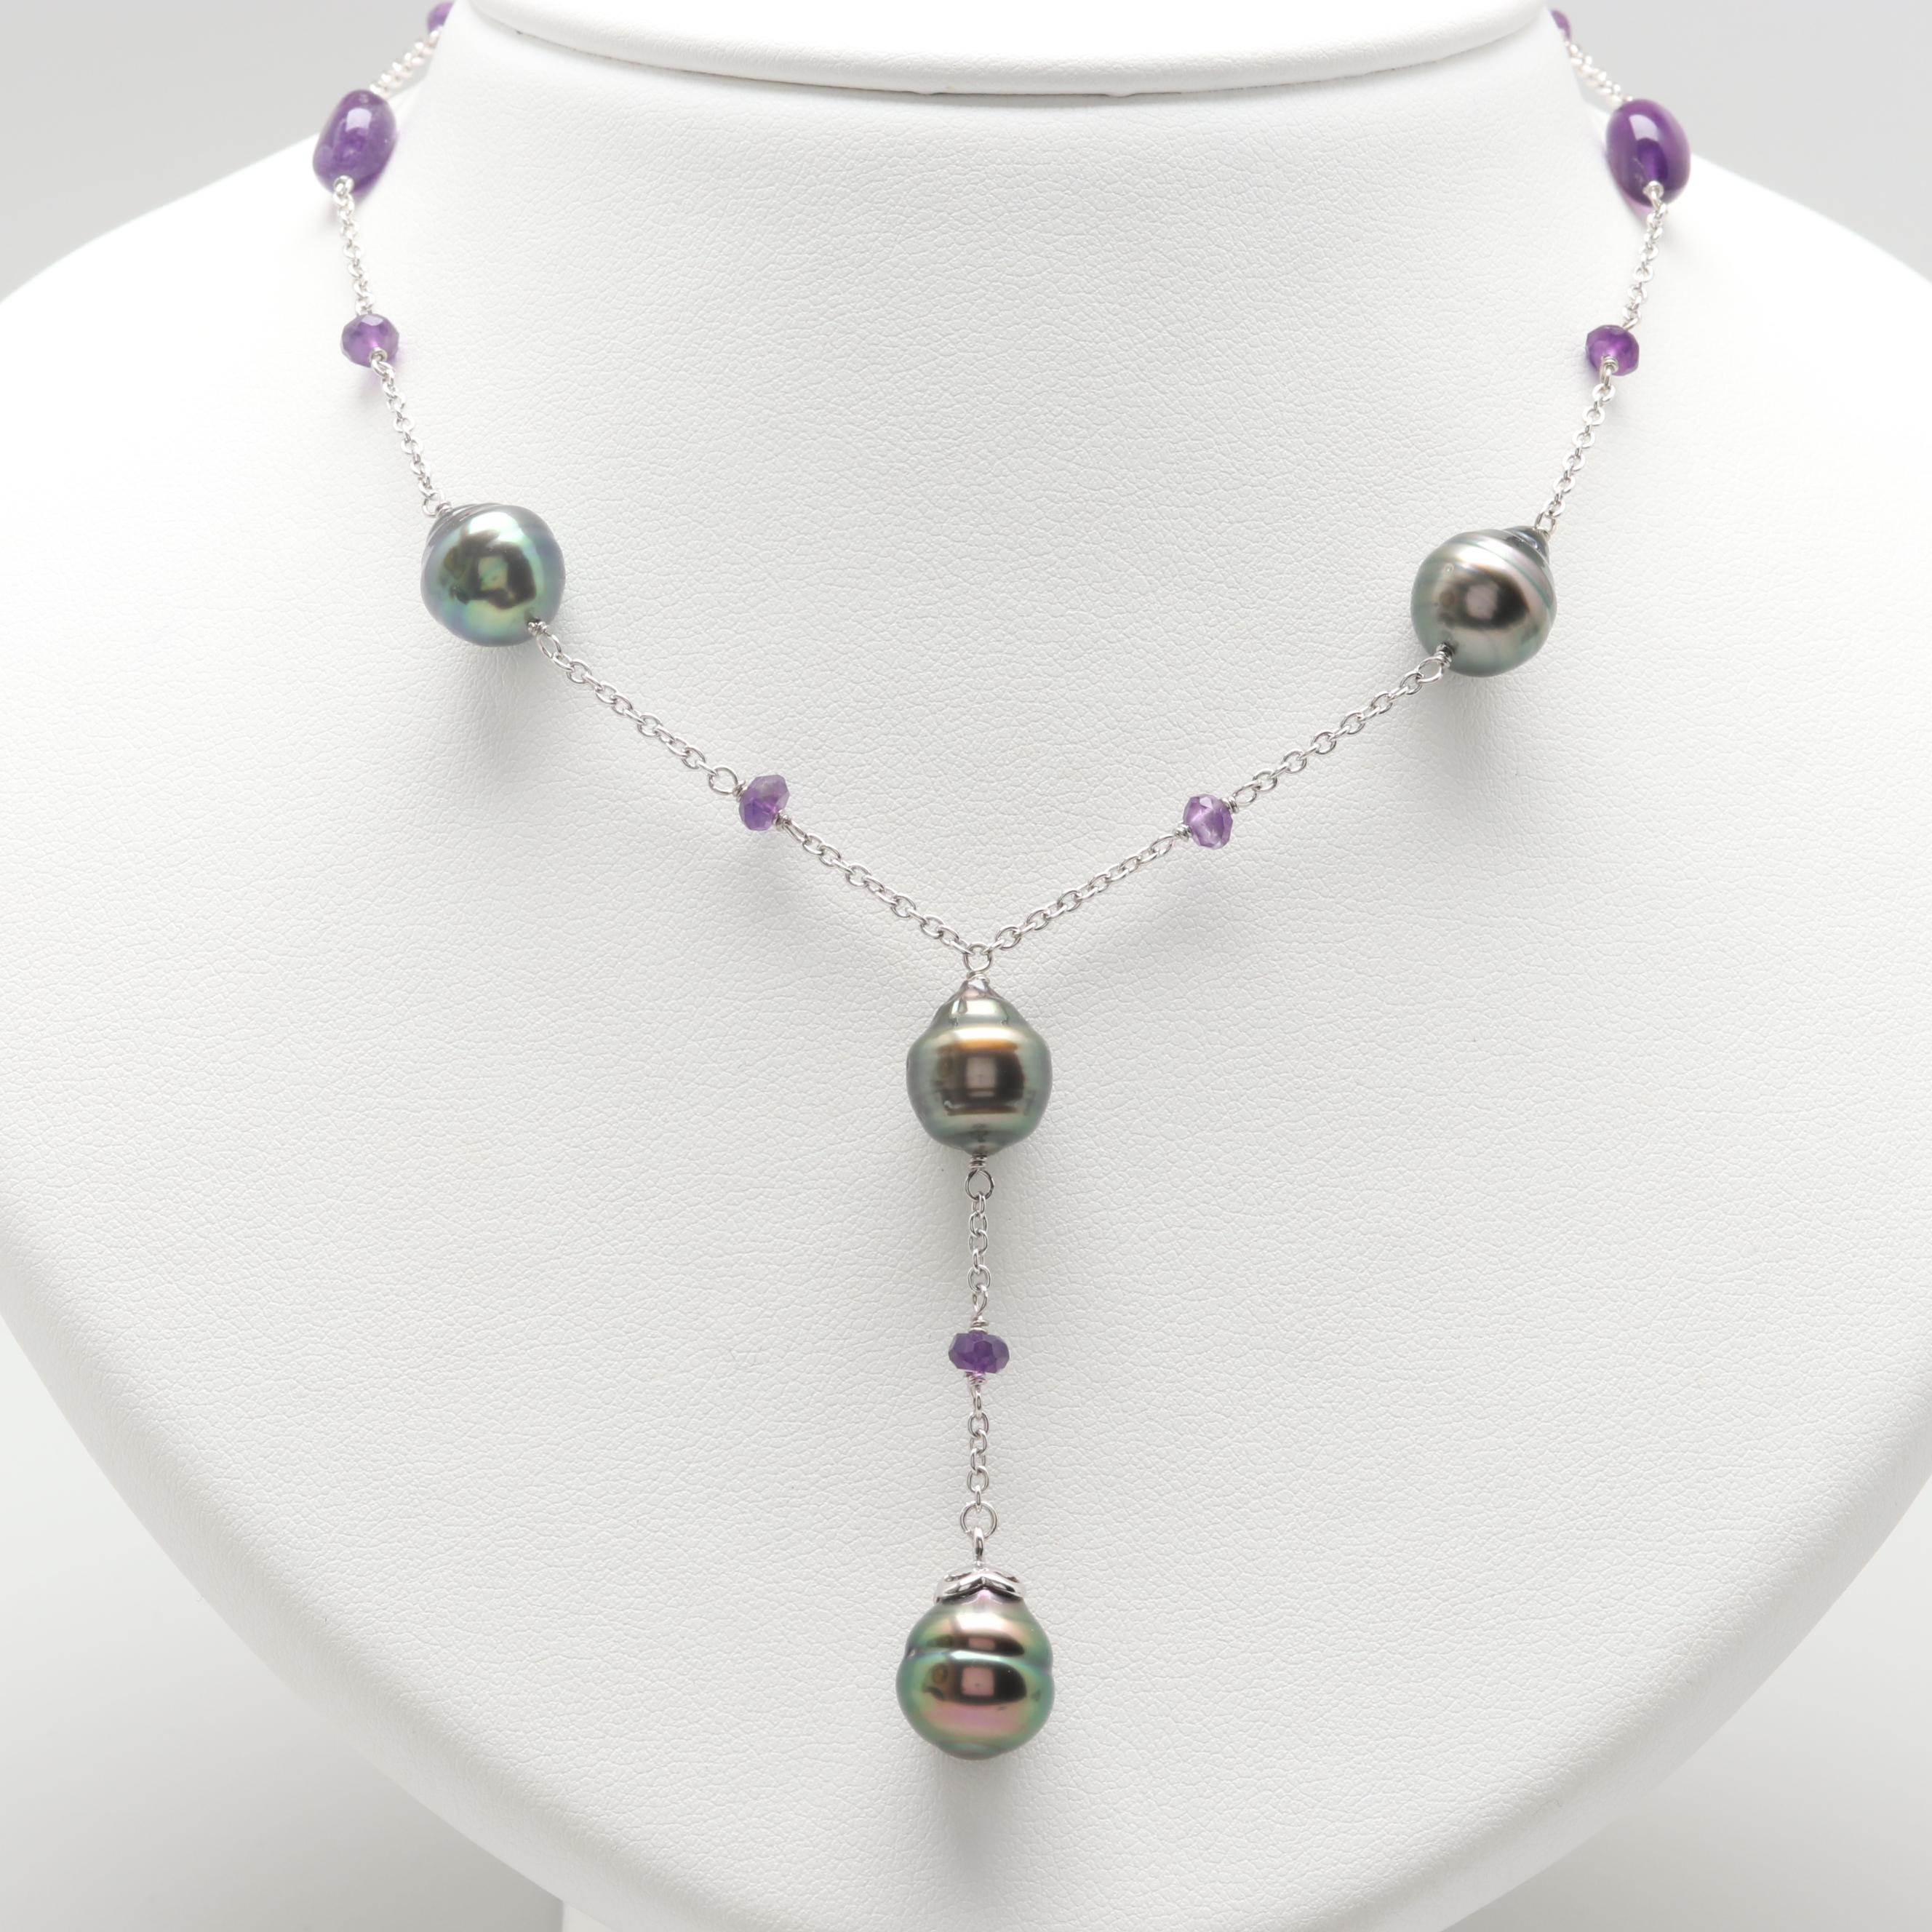 Silver Tone and Sterling Silver Cultured Pearl and Amethyst Necklace